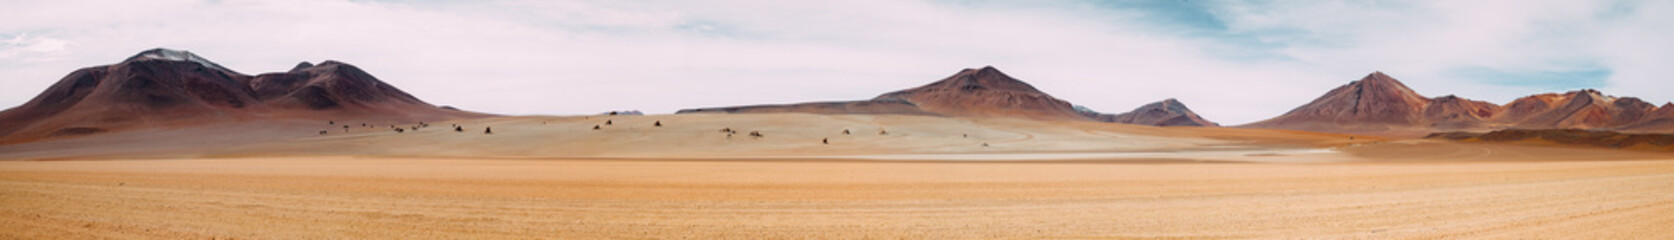 Foto op Aluminium Droogte The vast expanse of nothingness - Atacama Desert - Bolivia